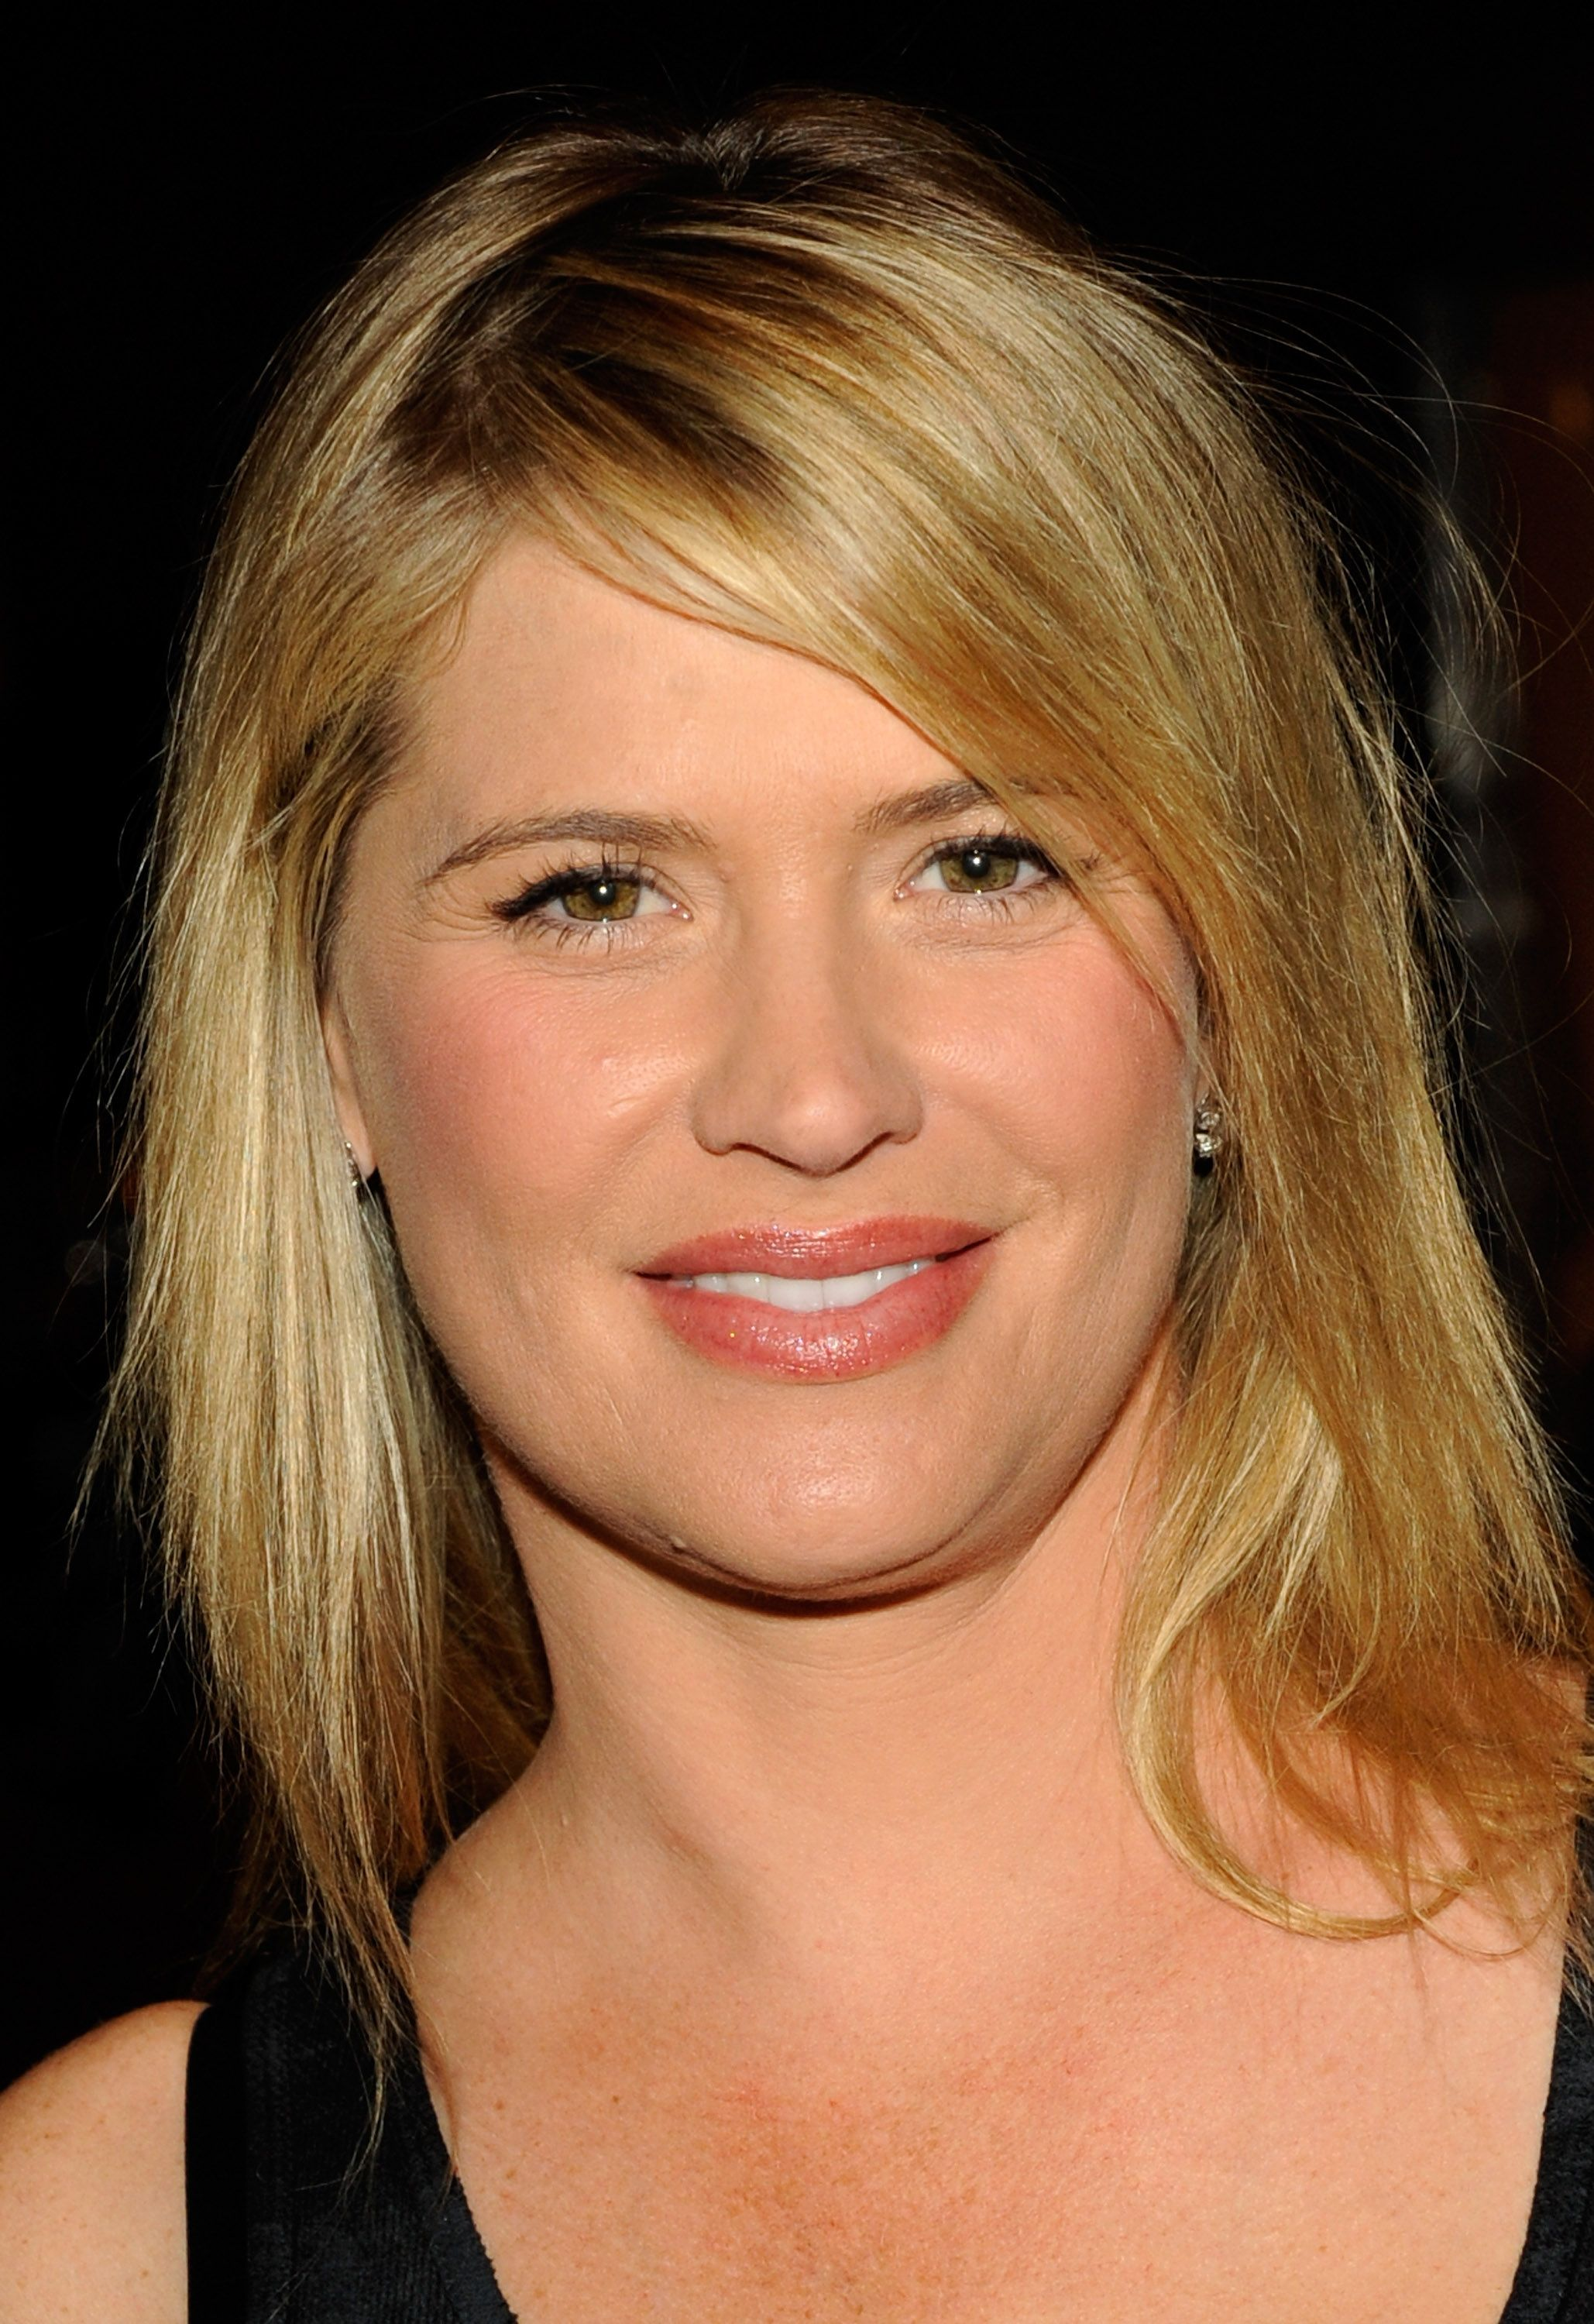 61 Kristy Swanson Sexy Pictures Uncover Her Awesome Body ... |Kristy Swanson Weight Gain